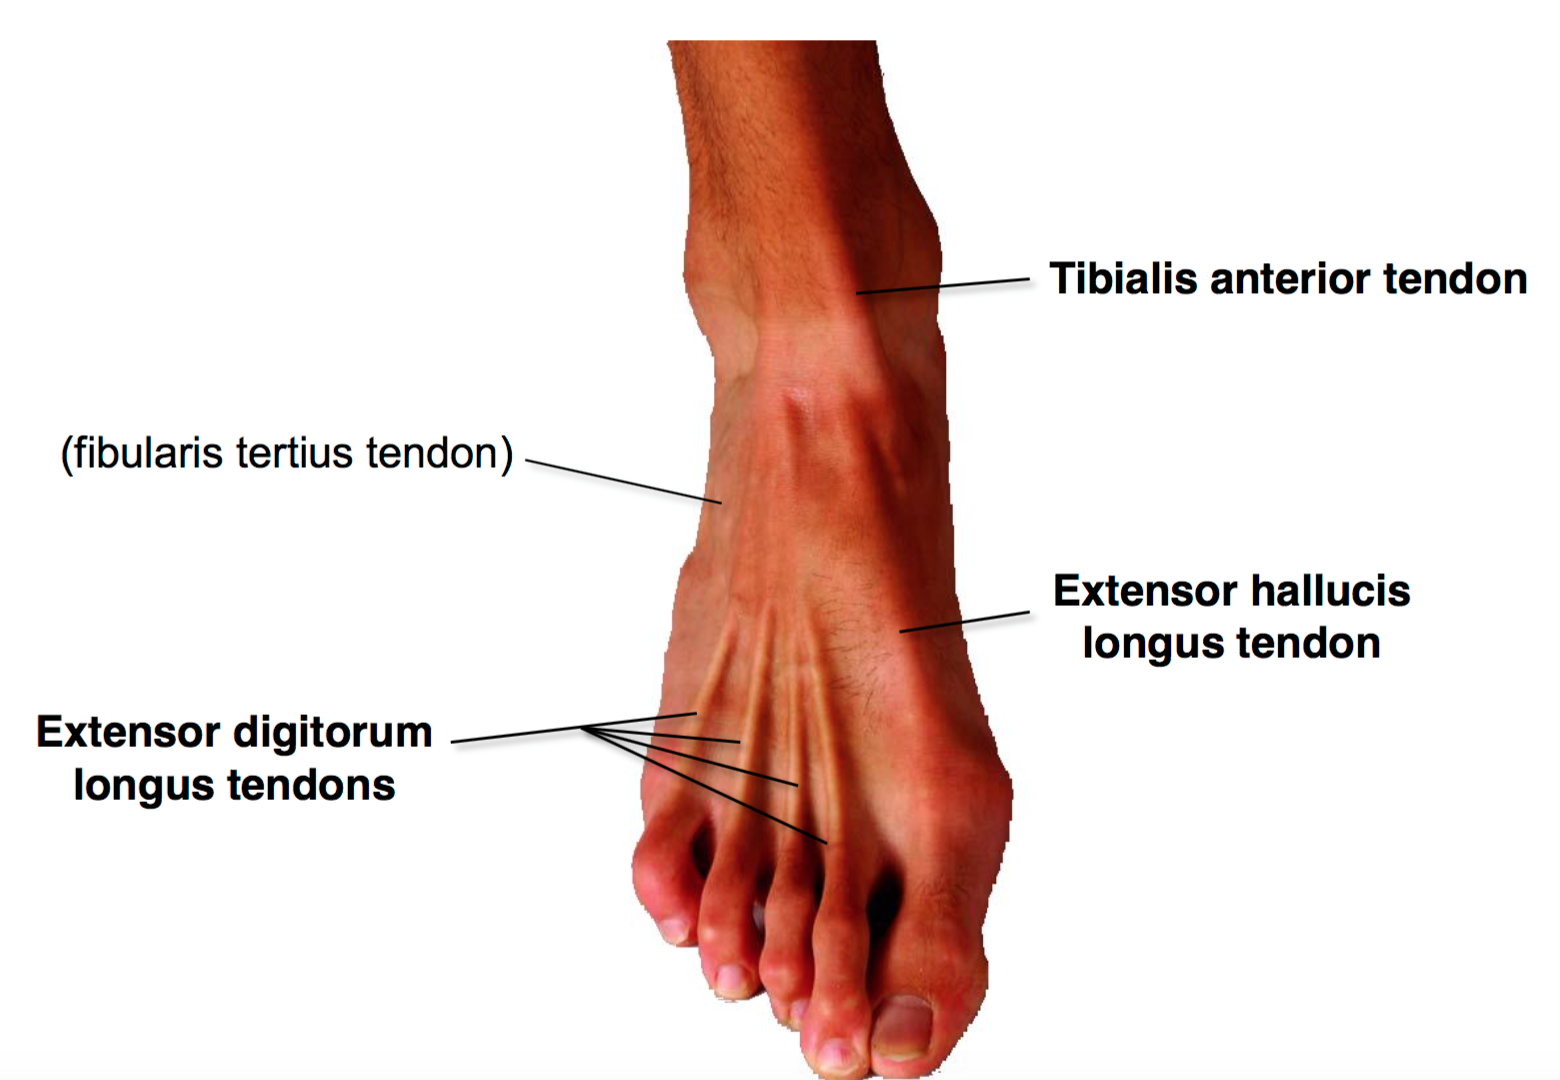 Surface Anatomy Foot Gallery - human body anatomy